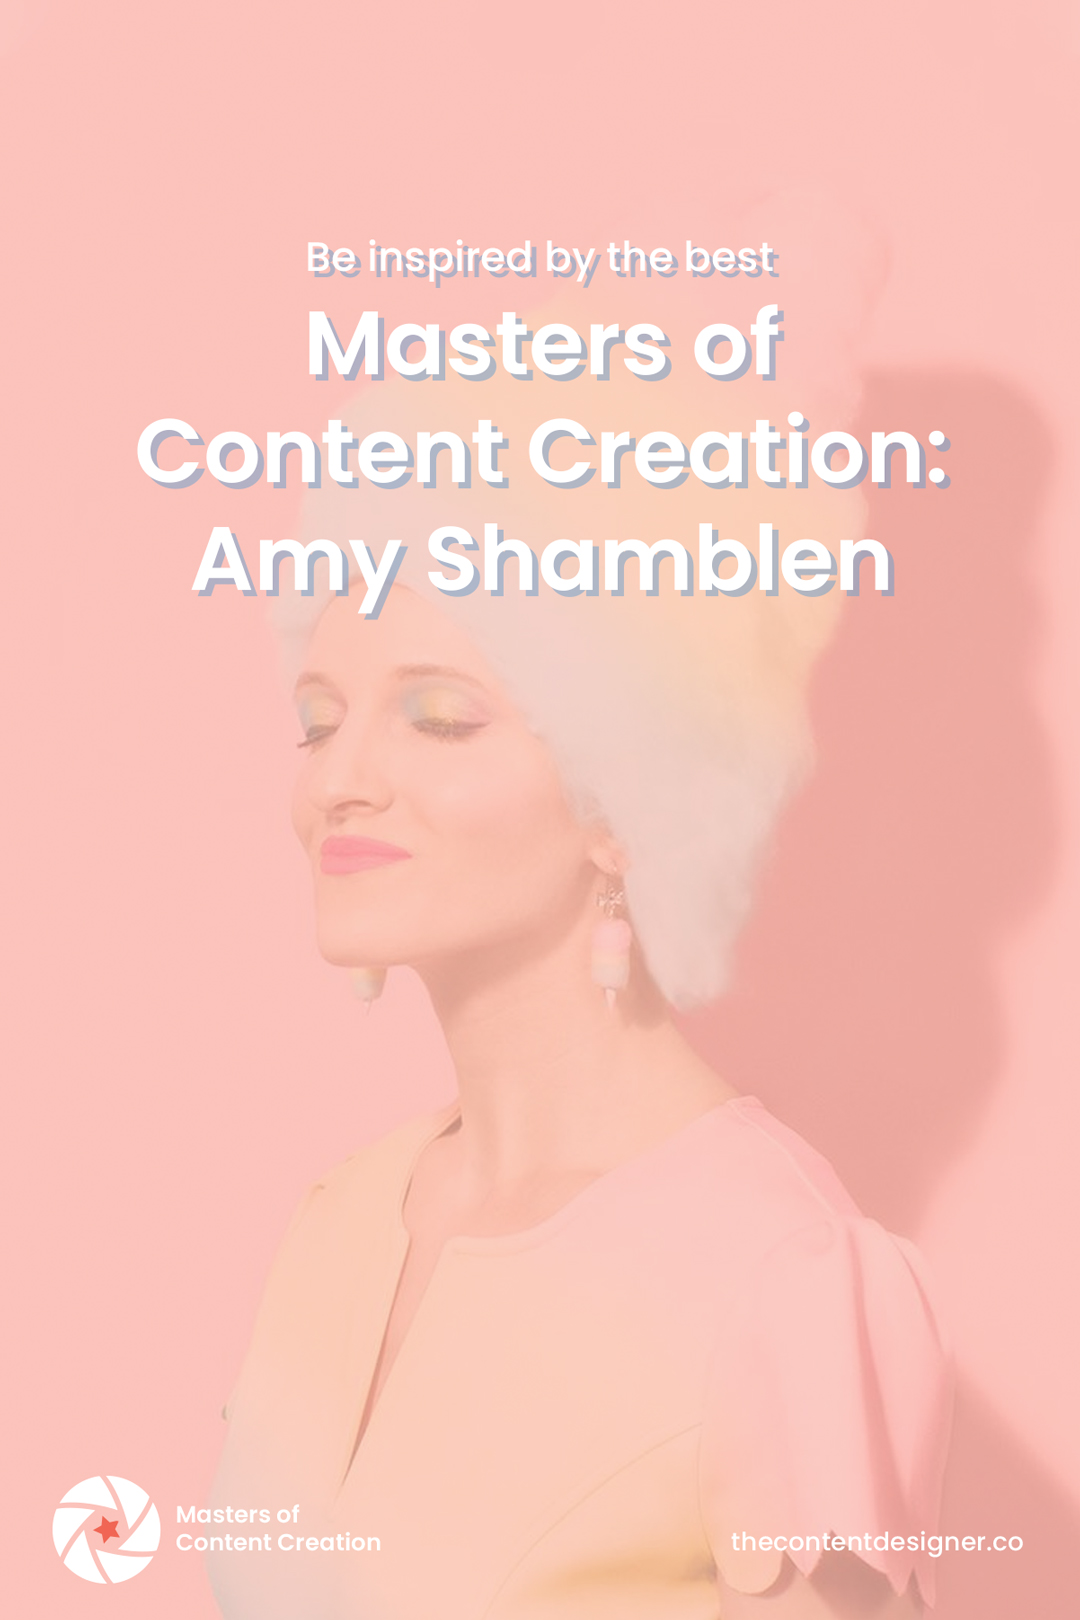 Amy Shamblen, Creative Photographer, Master of Content Creation | The Content Designer blog